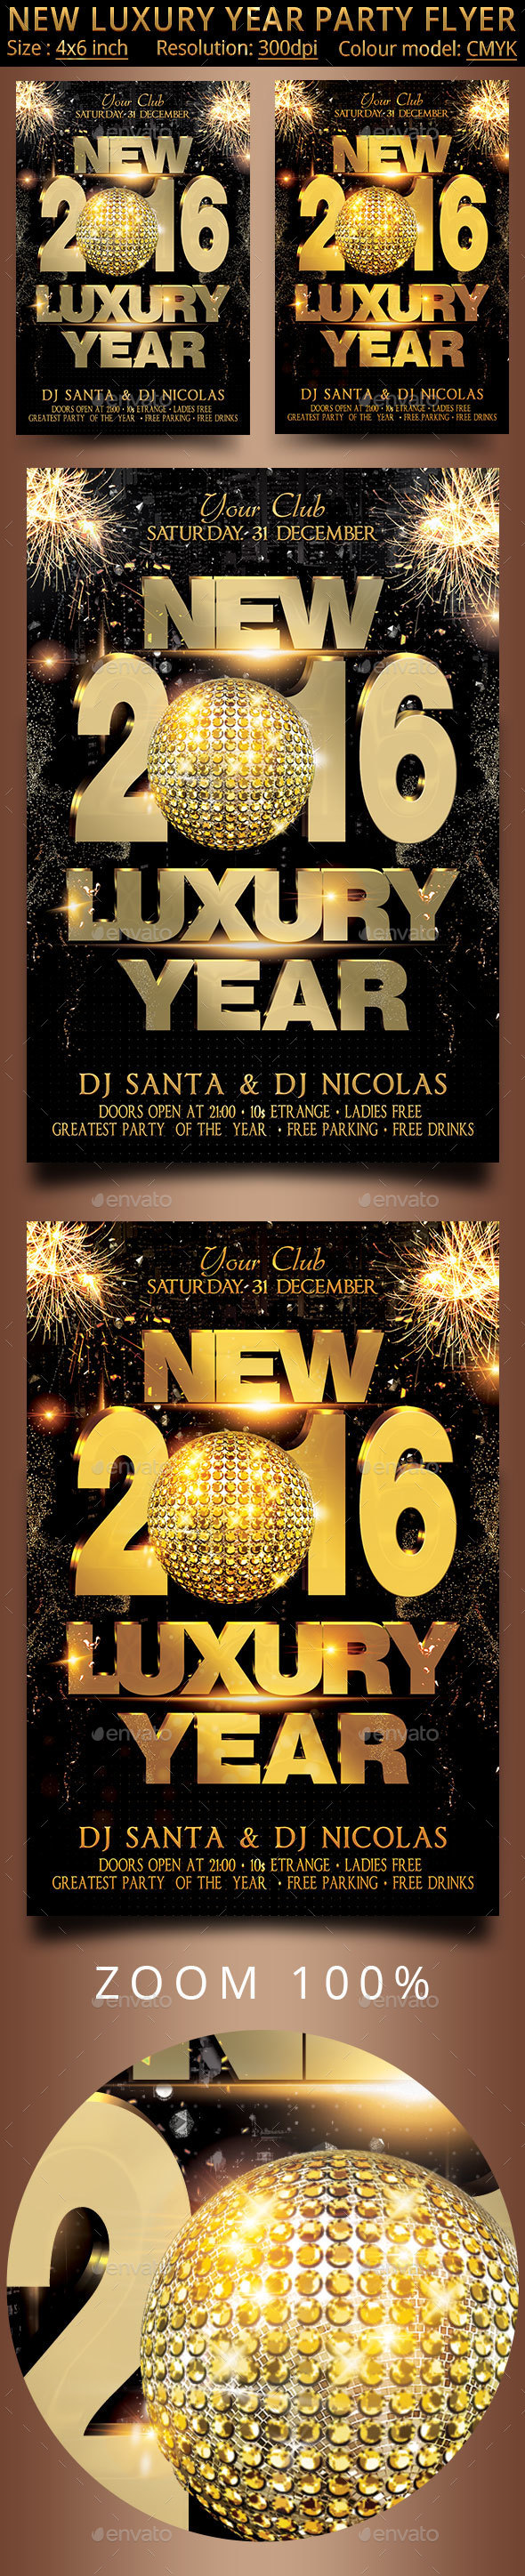 New Luxury Year Party Flyer - Clubs & Parties Events